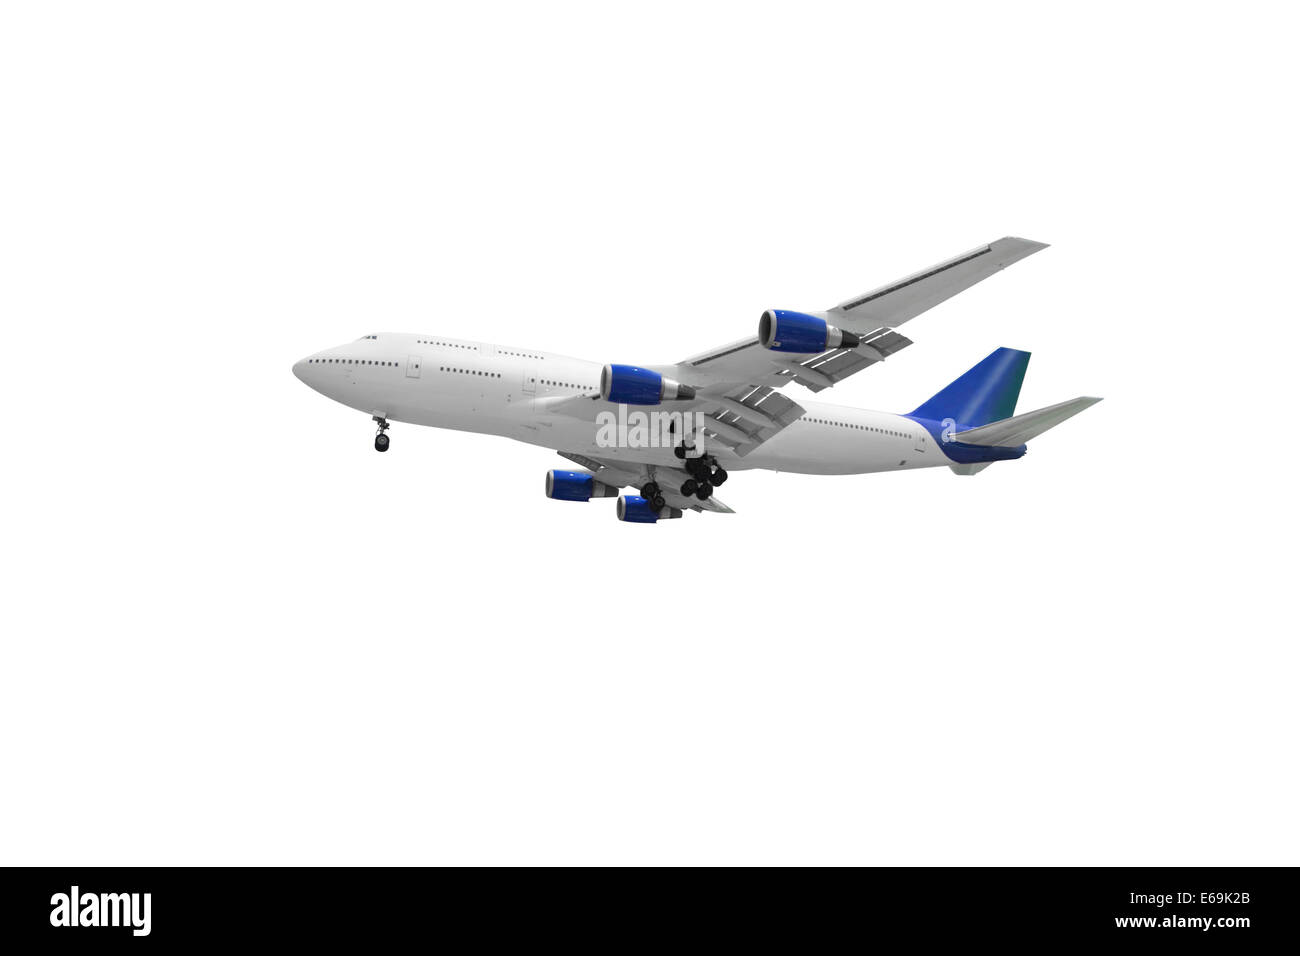 airplane,commercial airplane - Stock Image